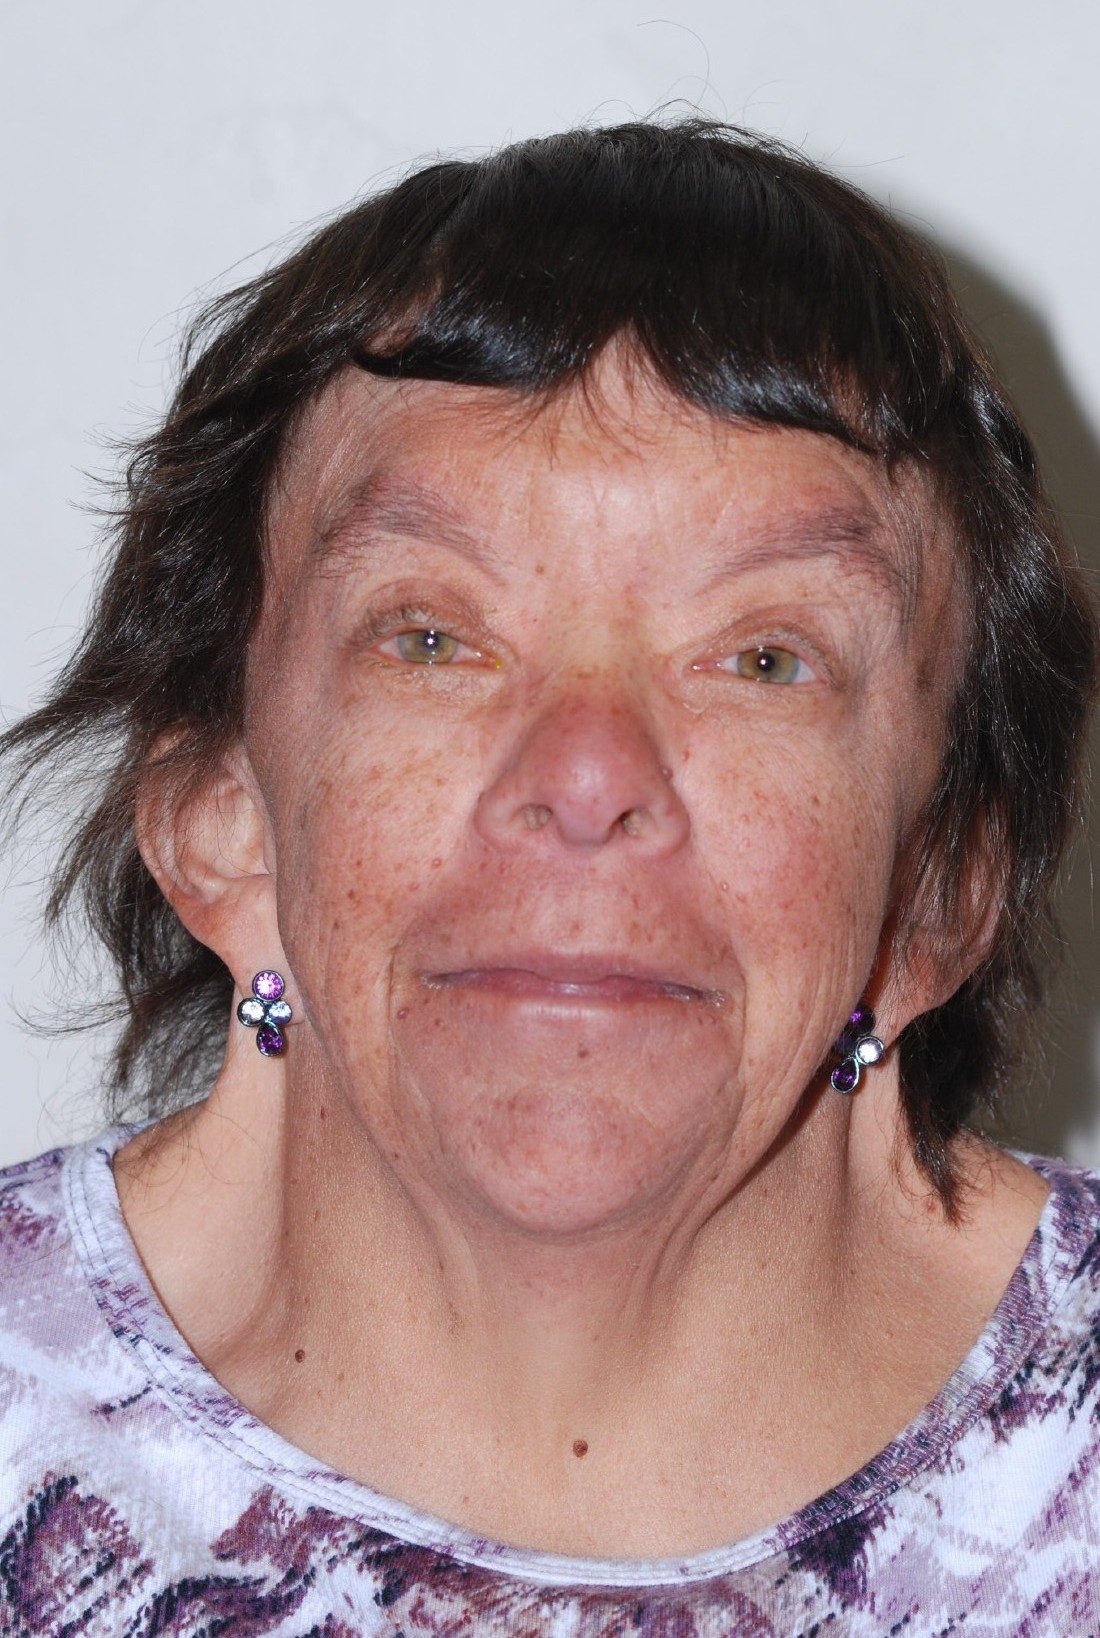 Facial view of 63 yo with Noonan syndrome.